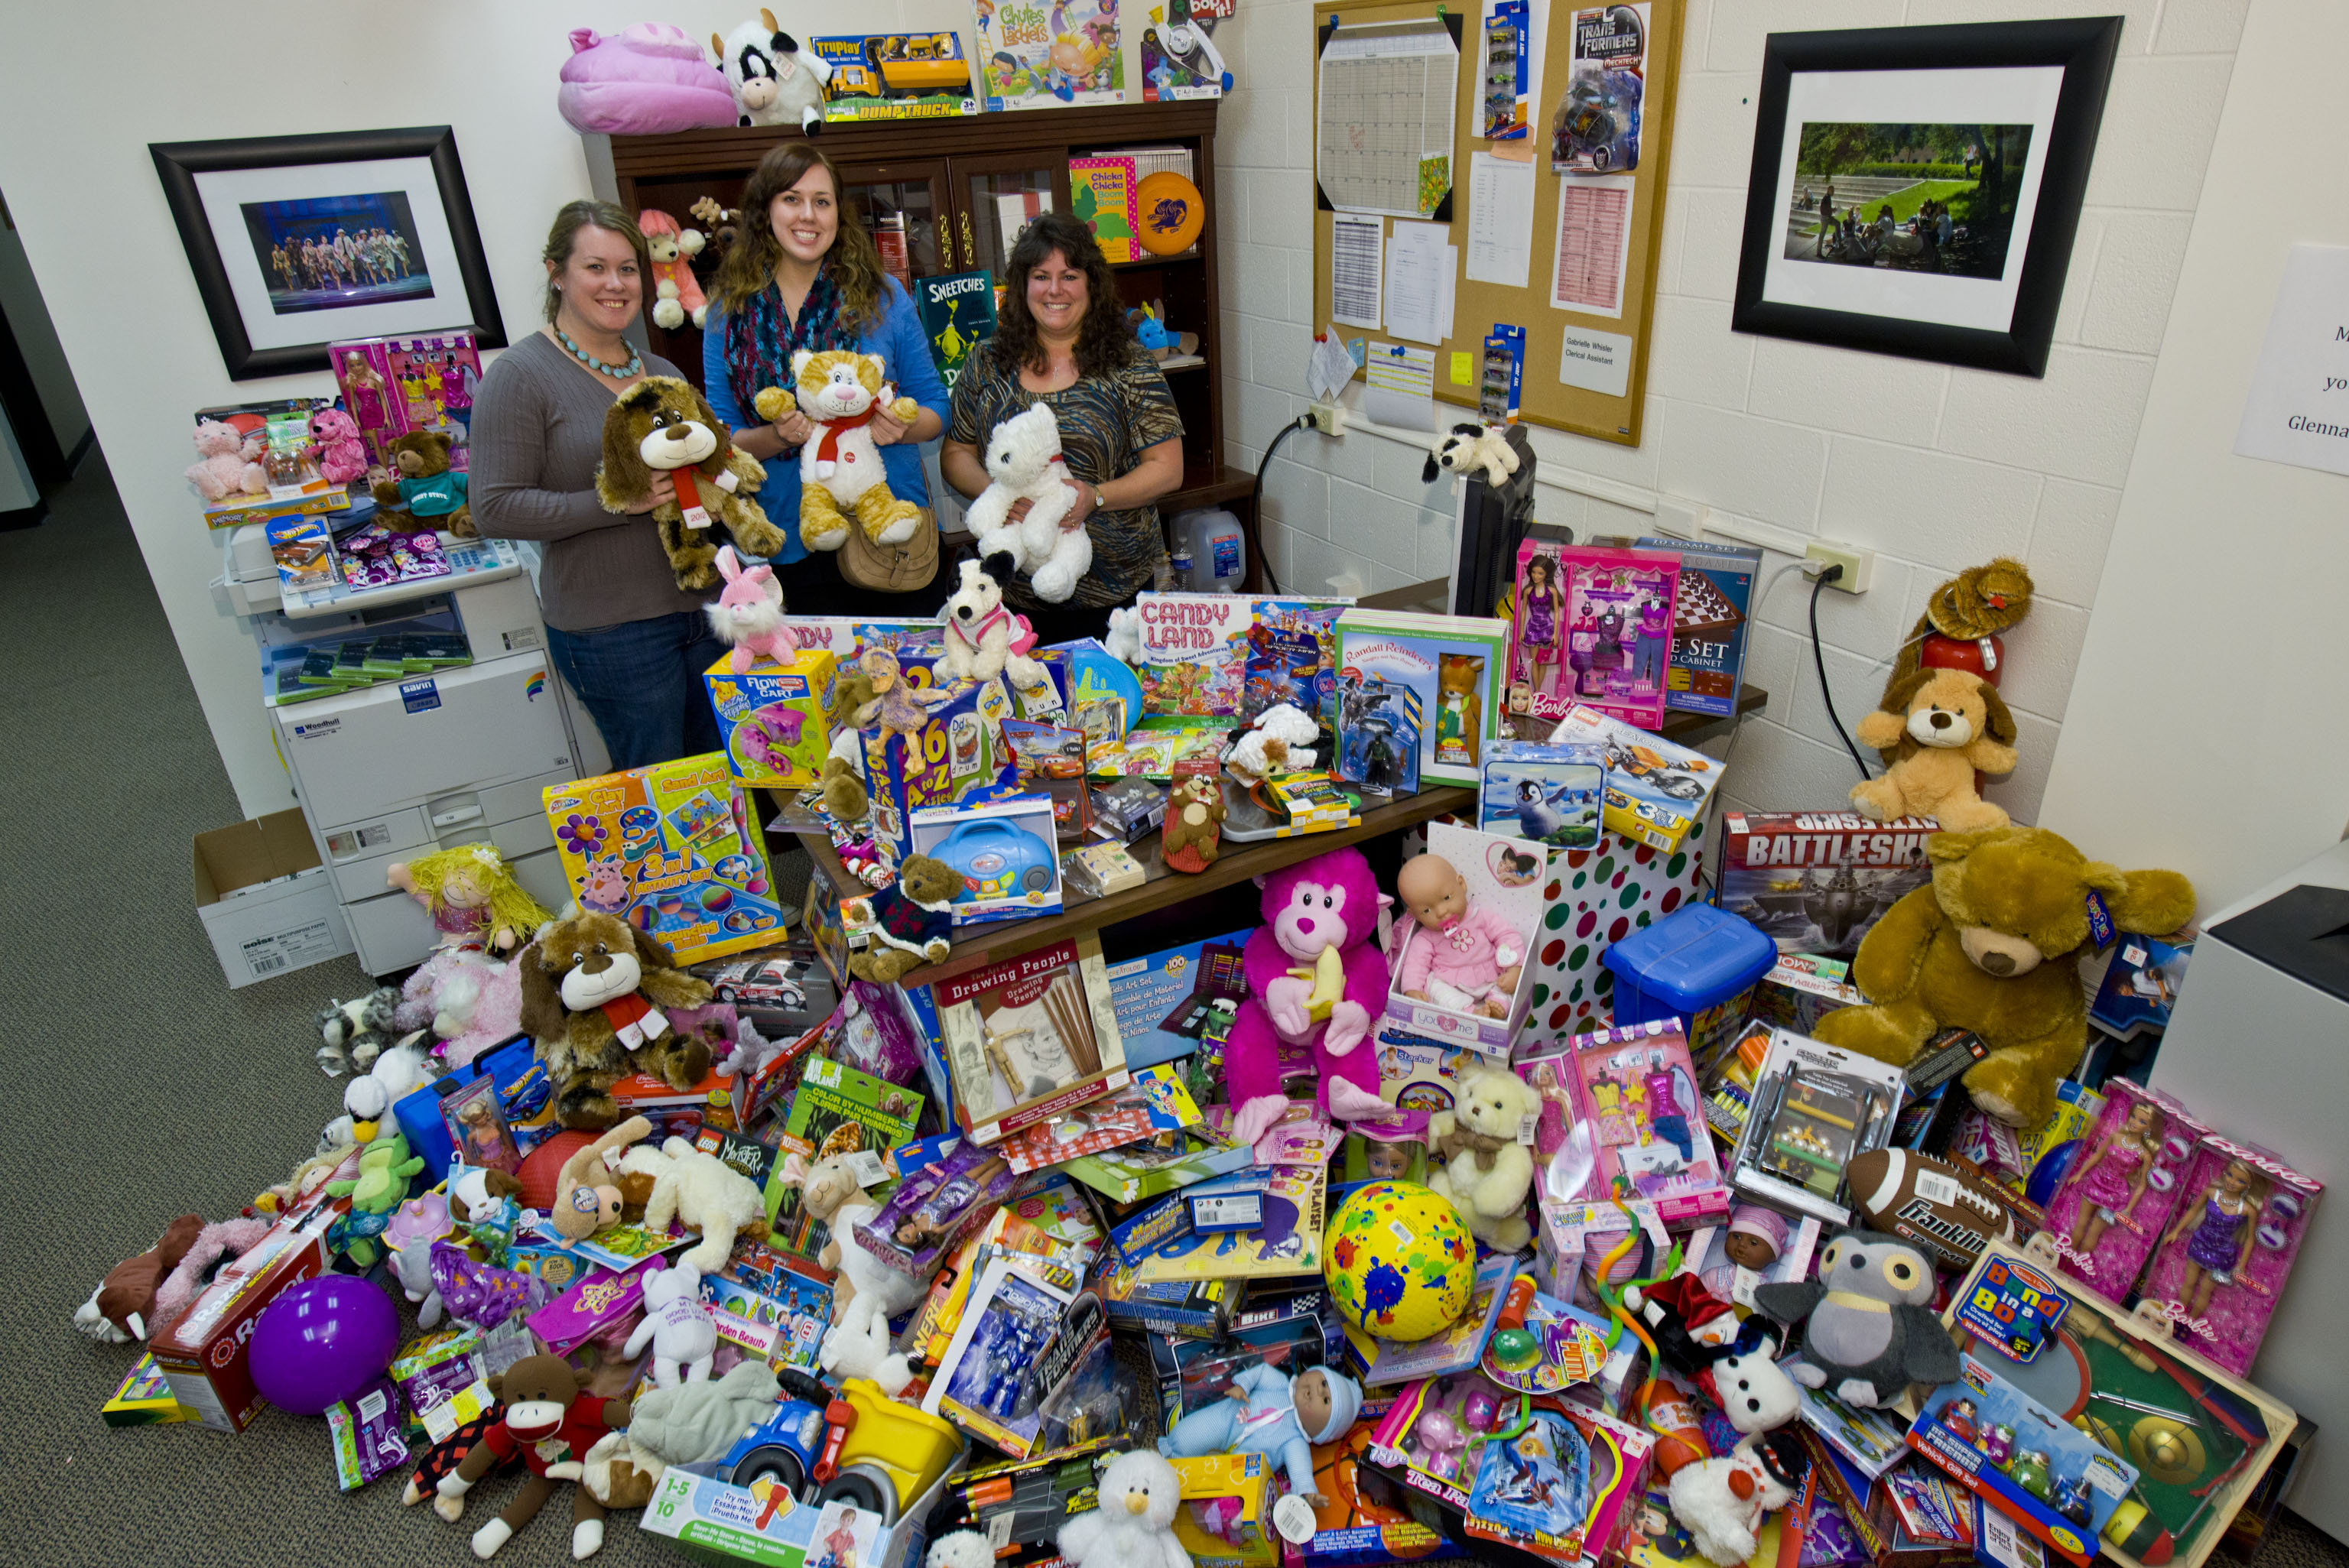 Coolest Toys For Christmas : Wright state newsroom christmas for kids toy drive